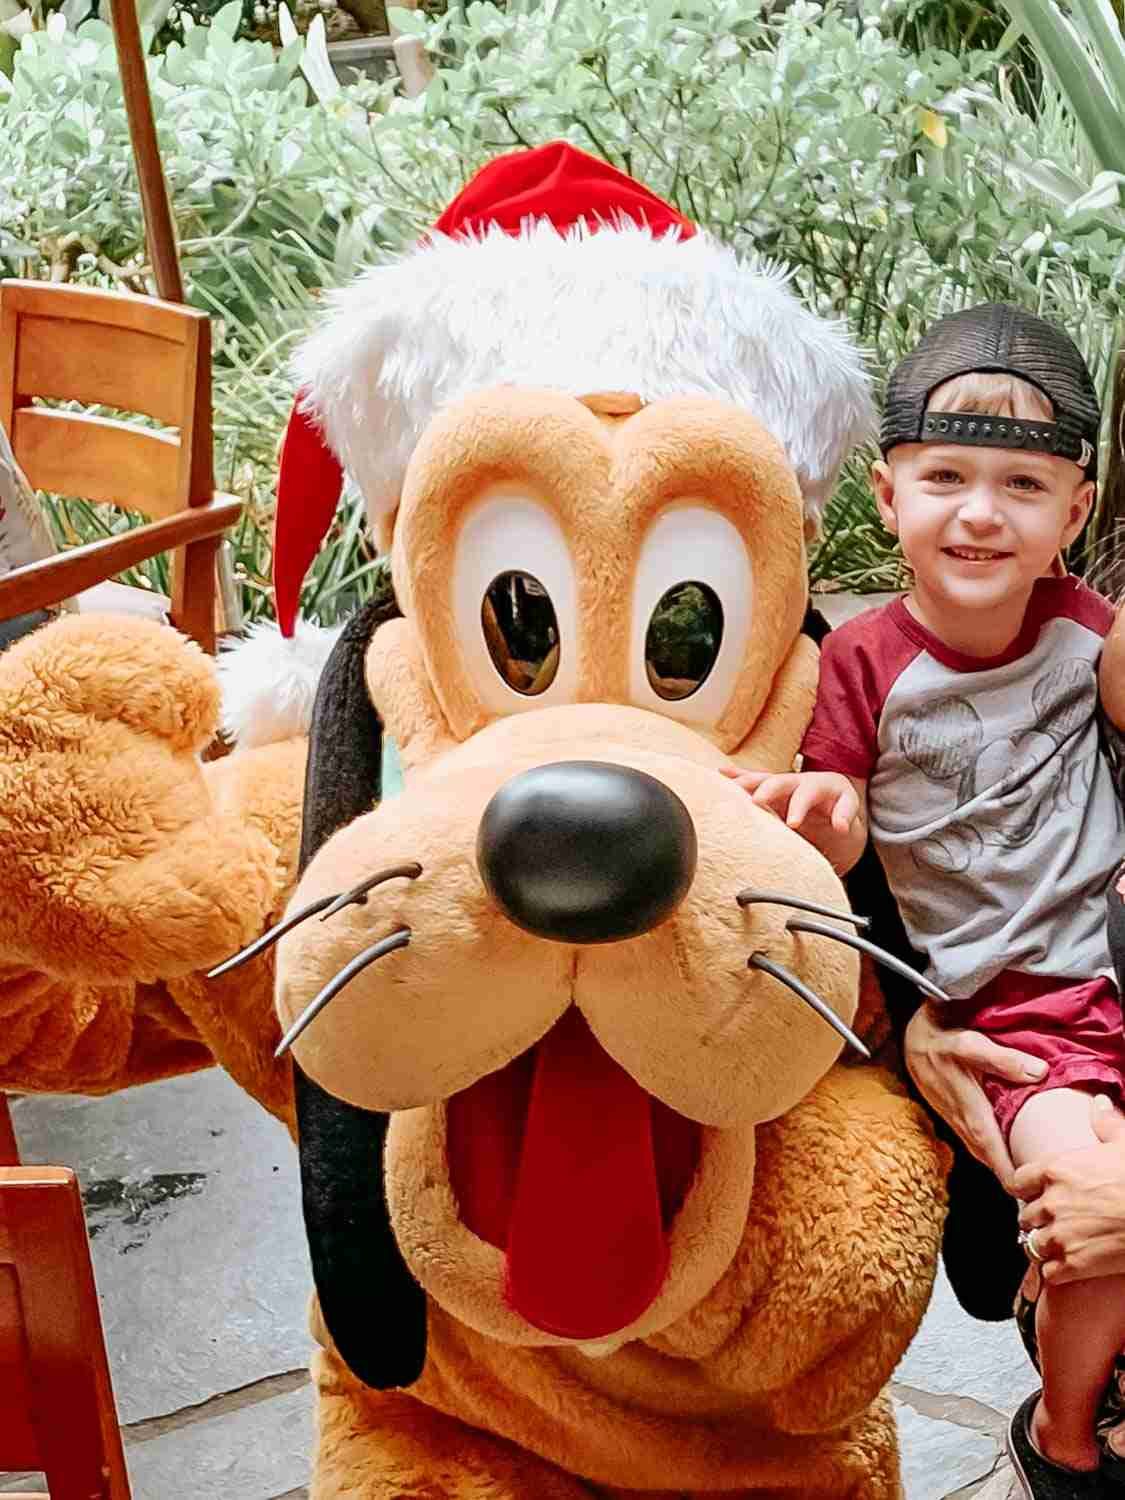 Little boy smiling beside Pluto at the Disney Character Breakfast at Aulani in Hawaii